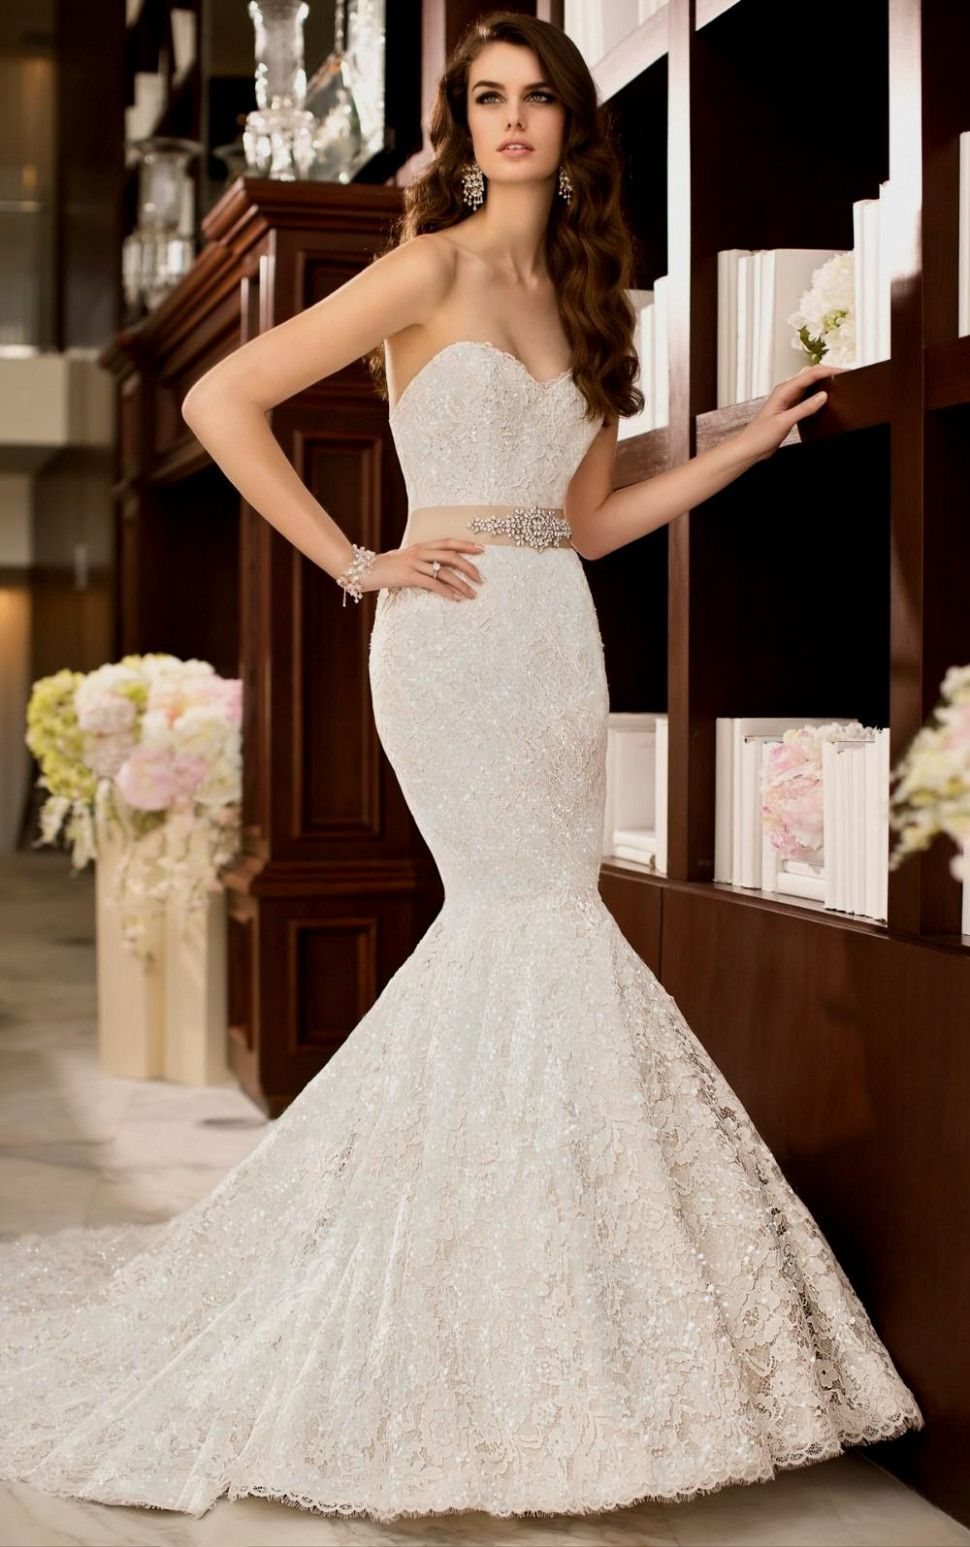 Blinged out wedding dress  sweetheart mermaid wedding dress with bling Naf Dresses in